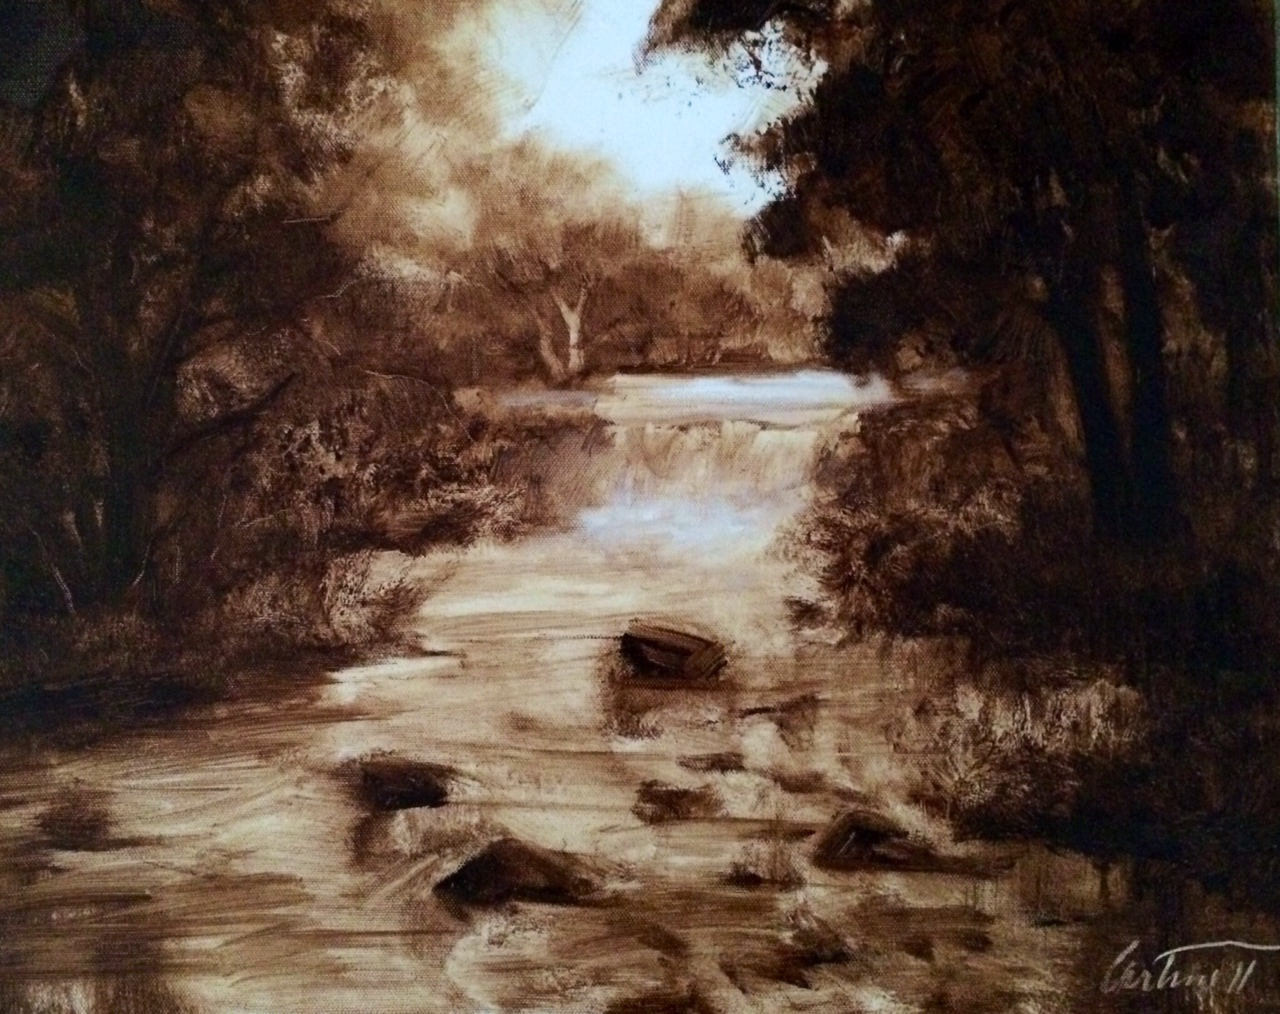 Monochrome Oil Painting